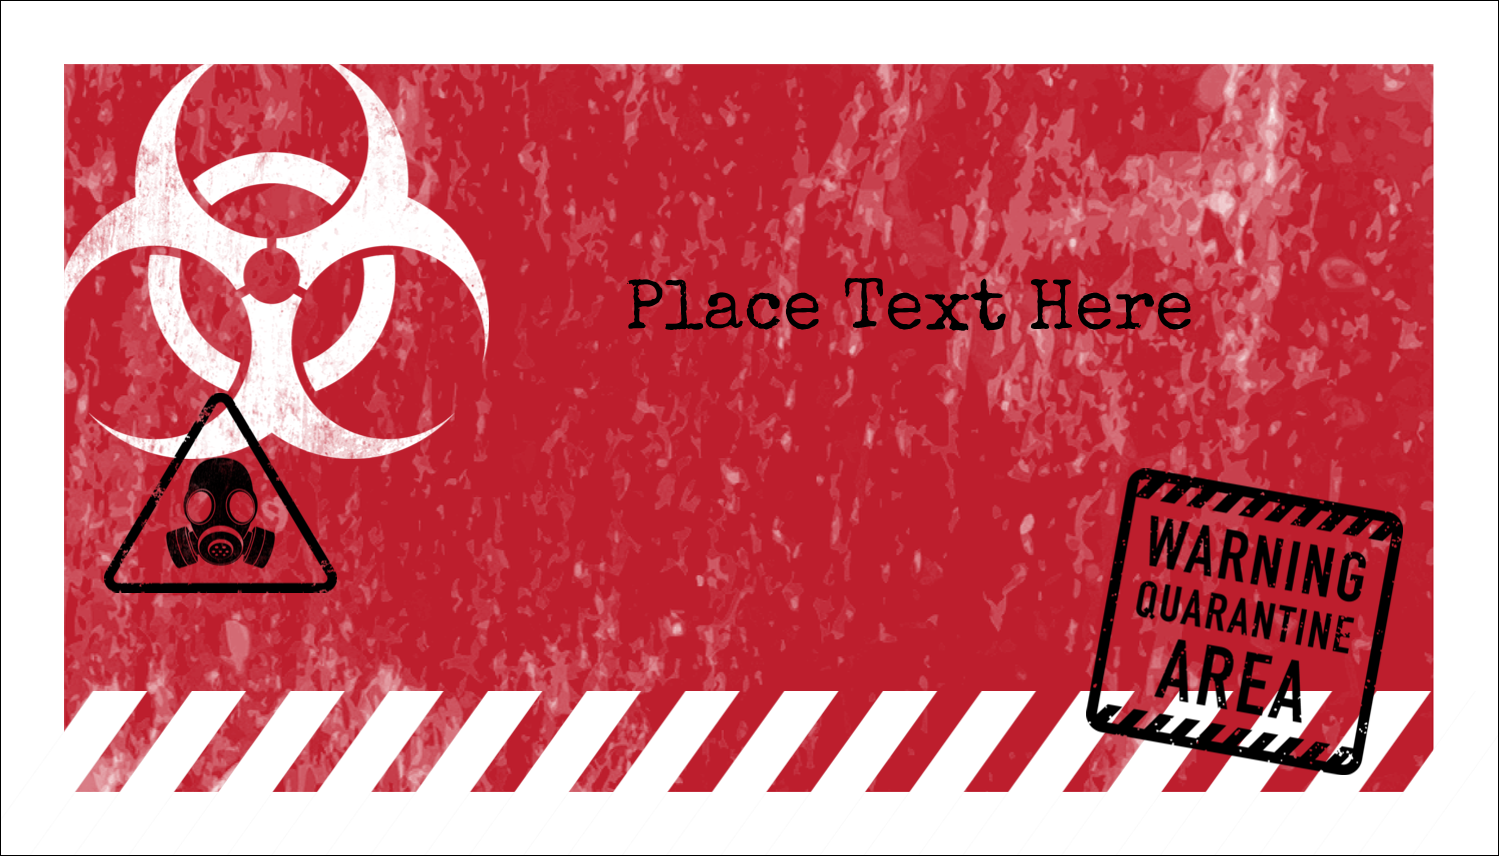 image regarding Quarantine Sign Printable referred to as Halloween Zombie Apocalypse predesigned Label and Card